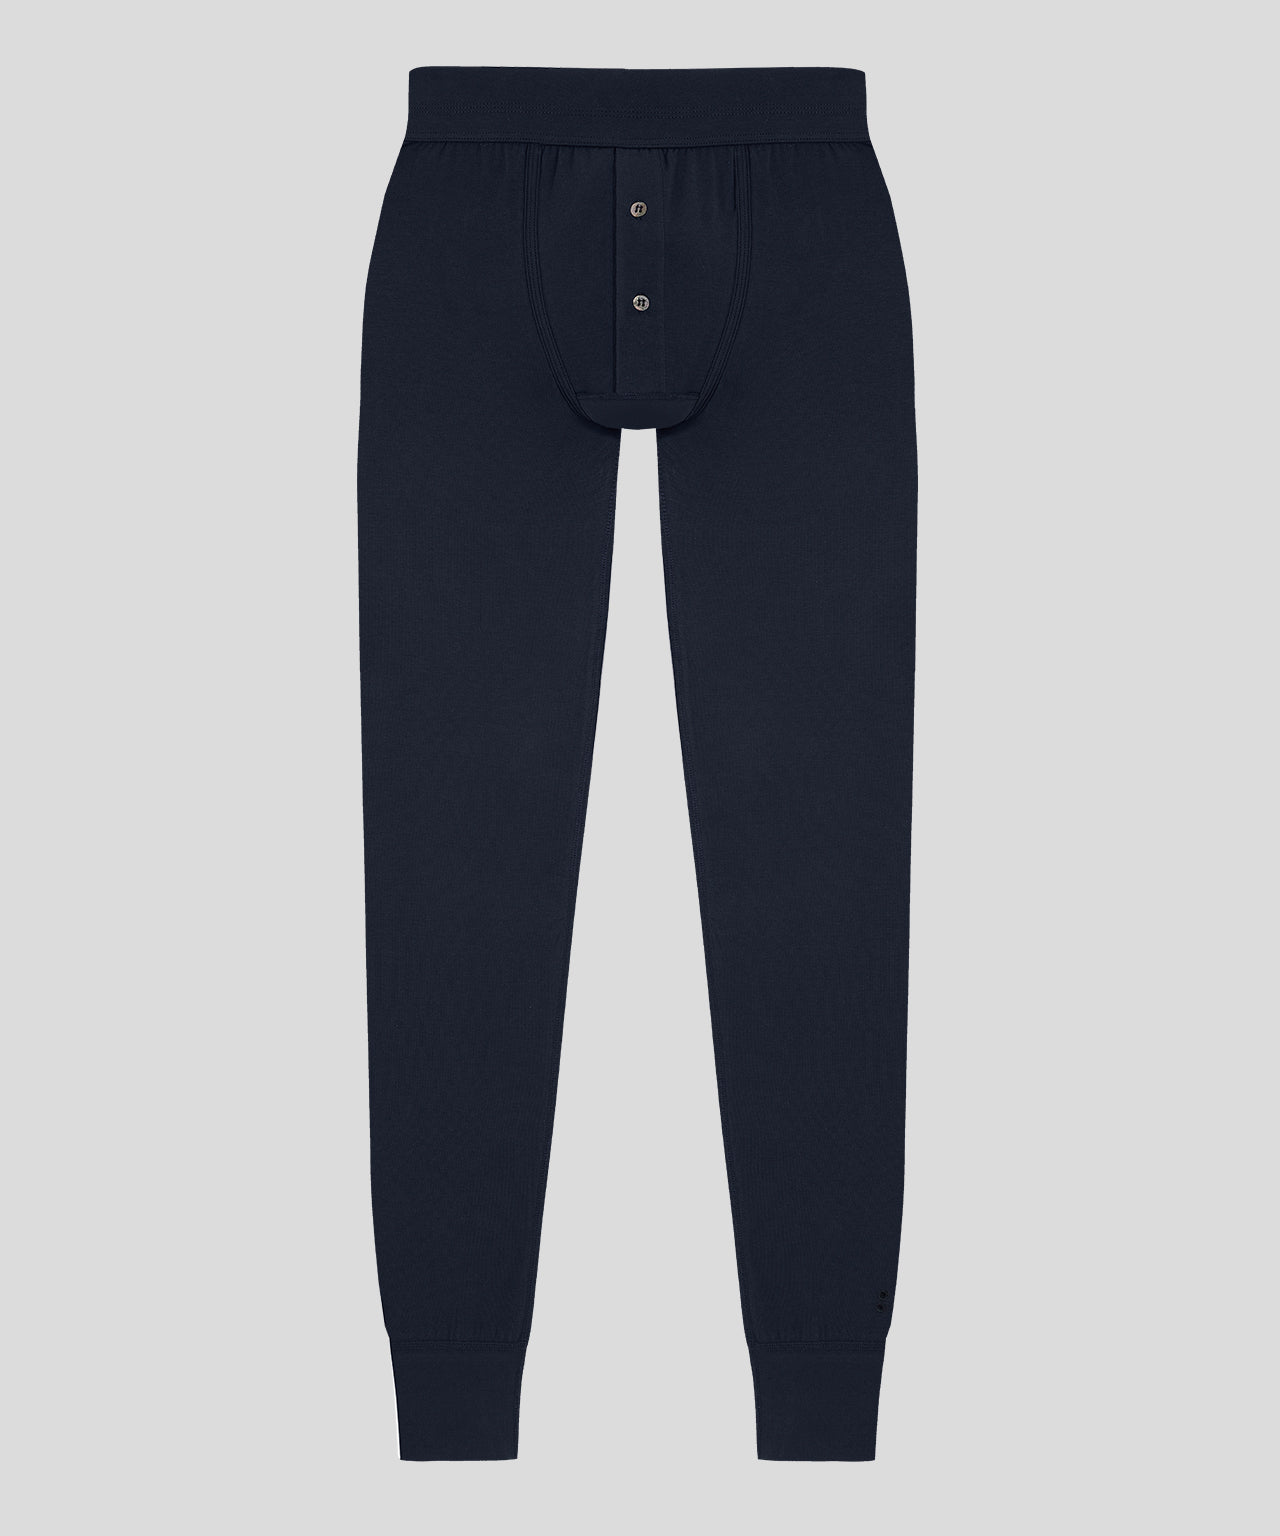 Long Johns - navy